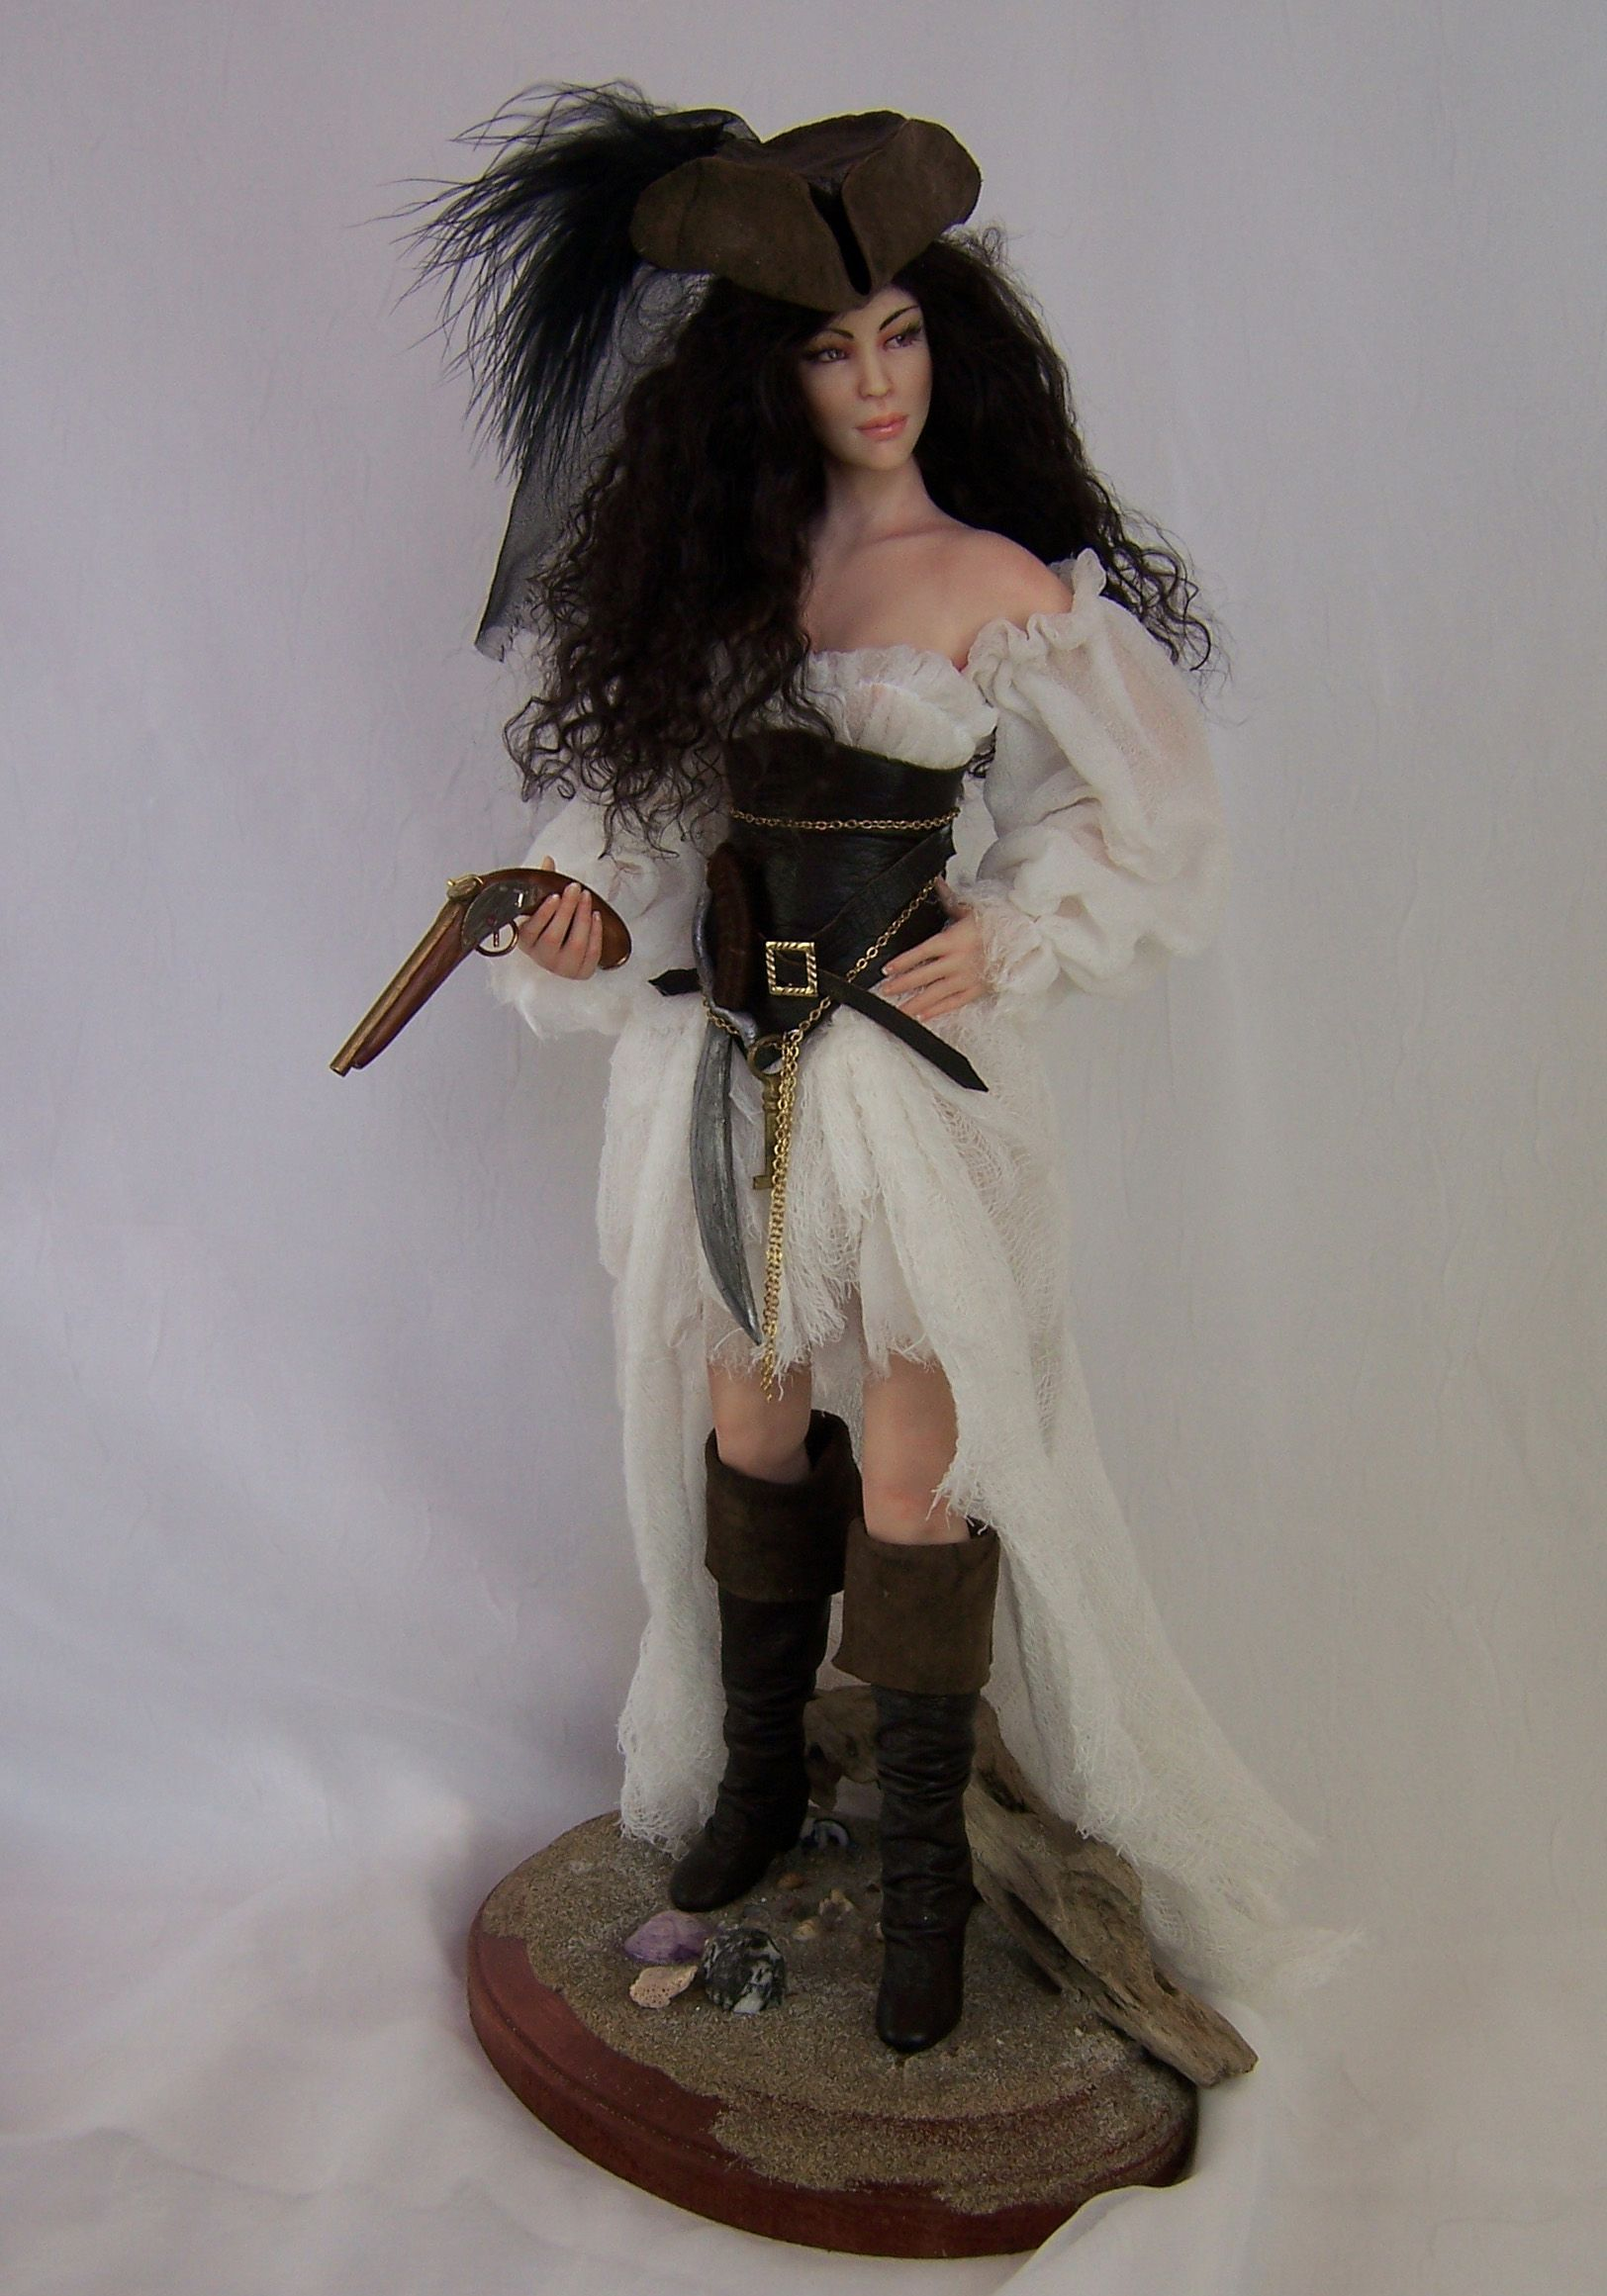 One Of A Kind Pirate Sculpture By Phyllis Morrow Of Pgm